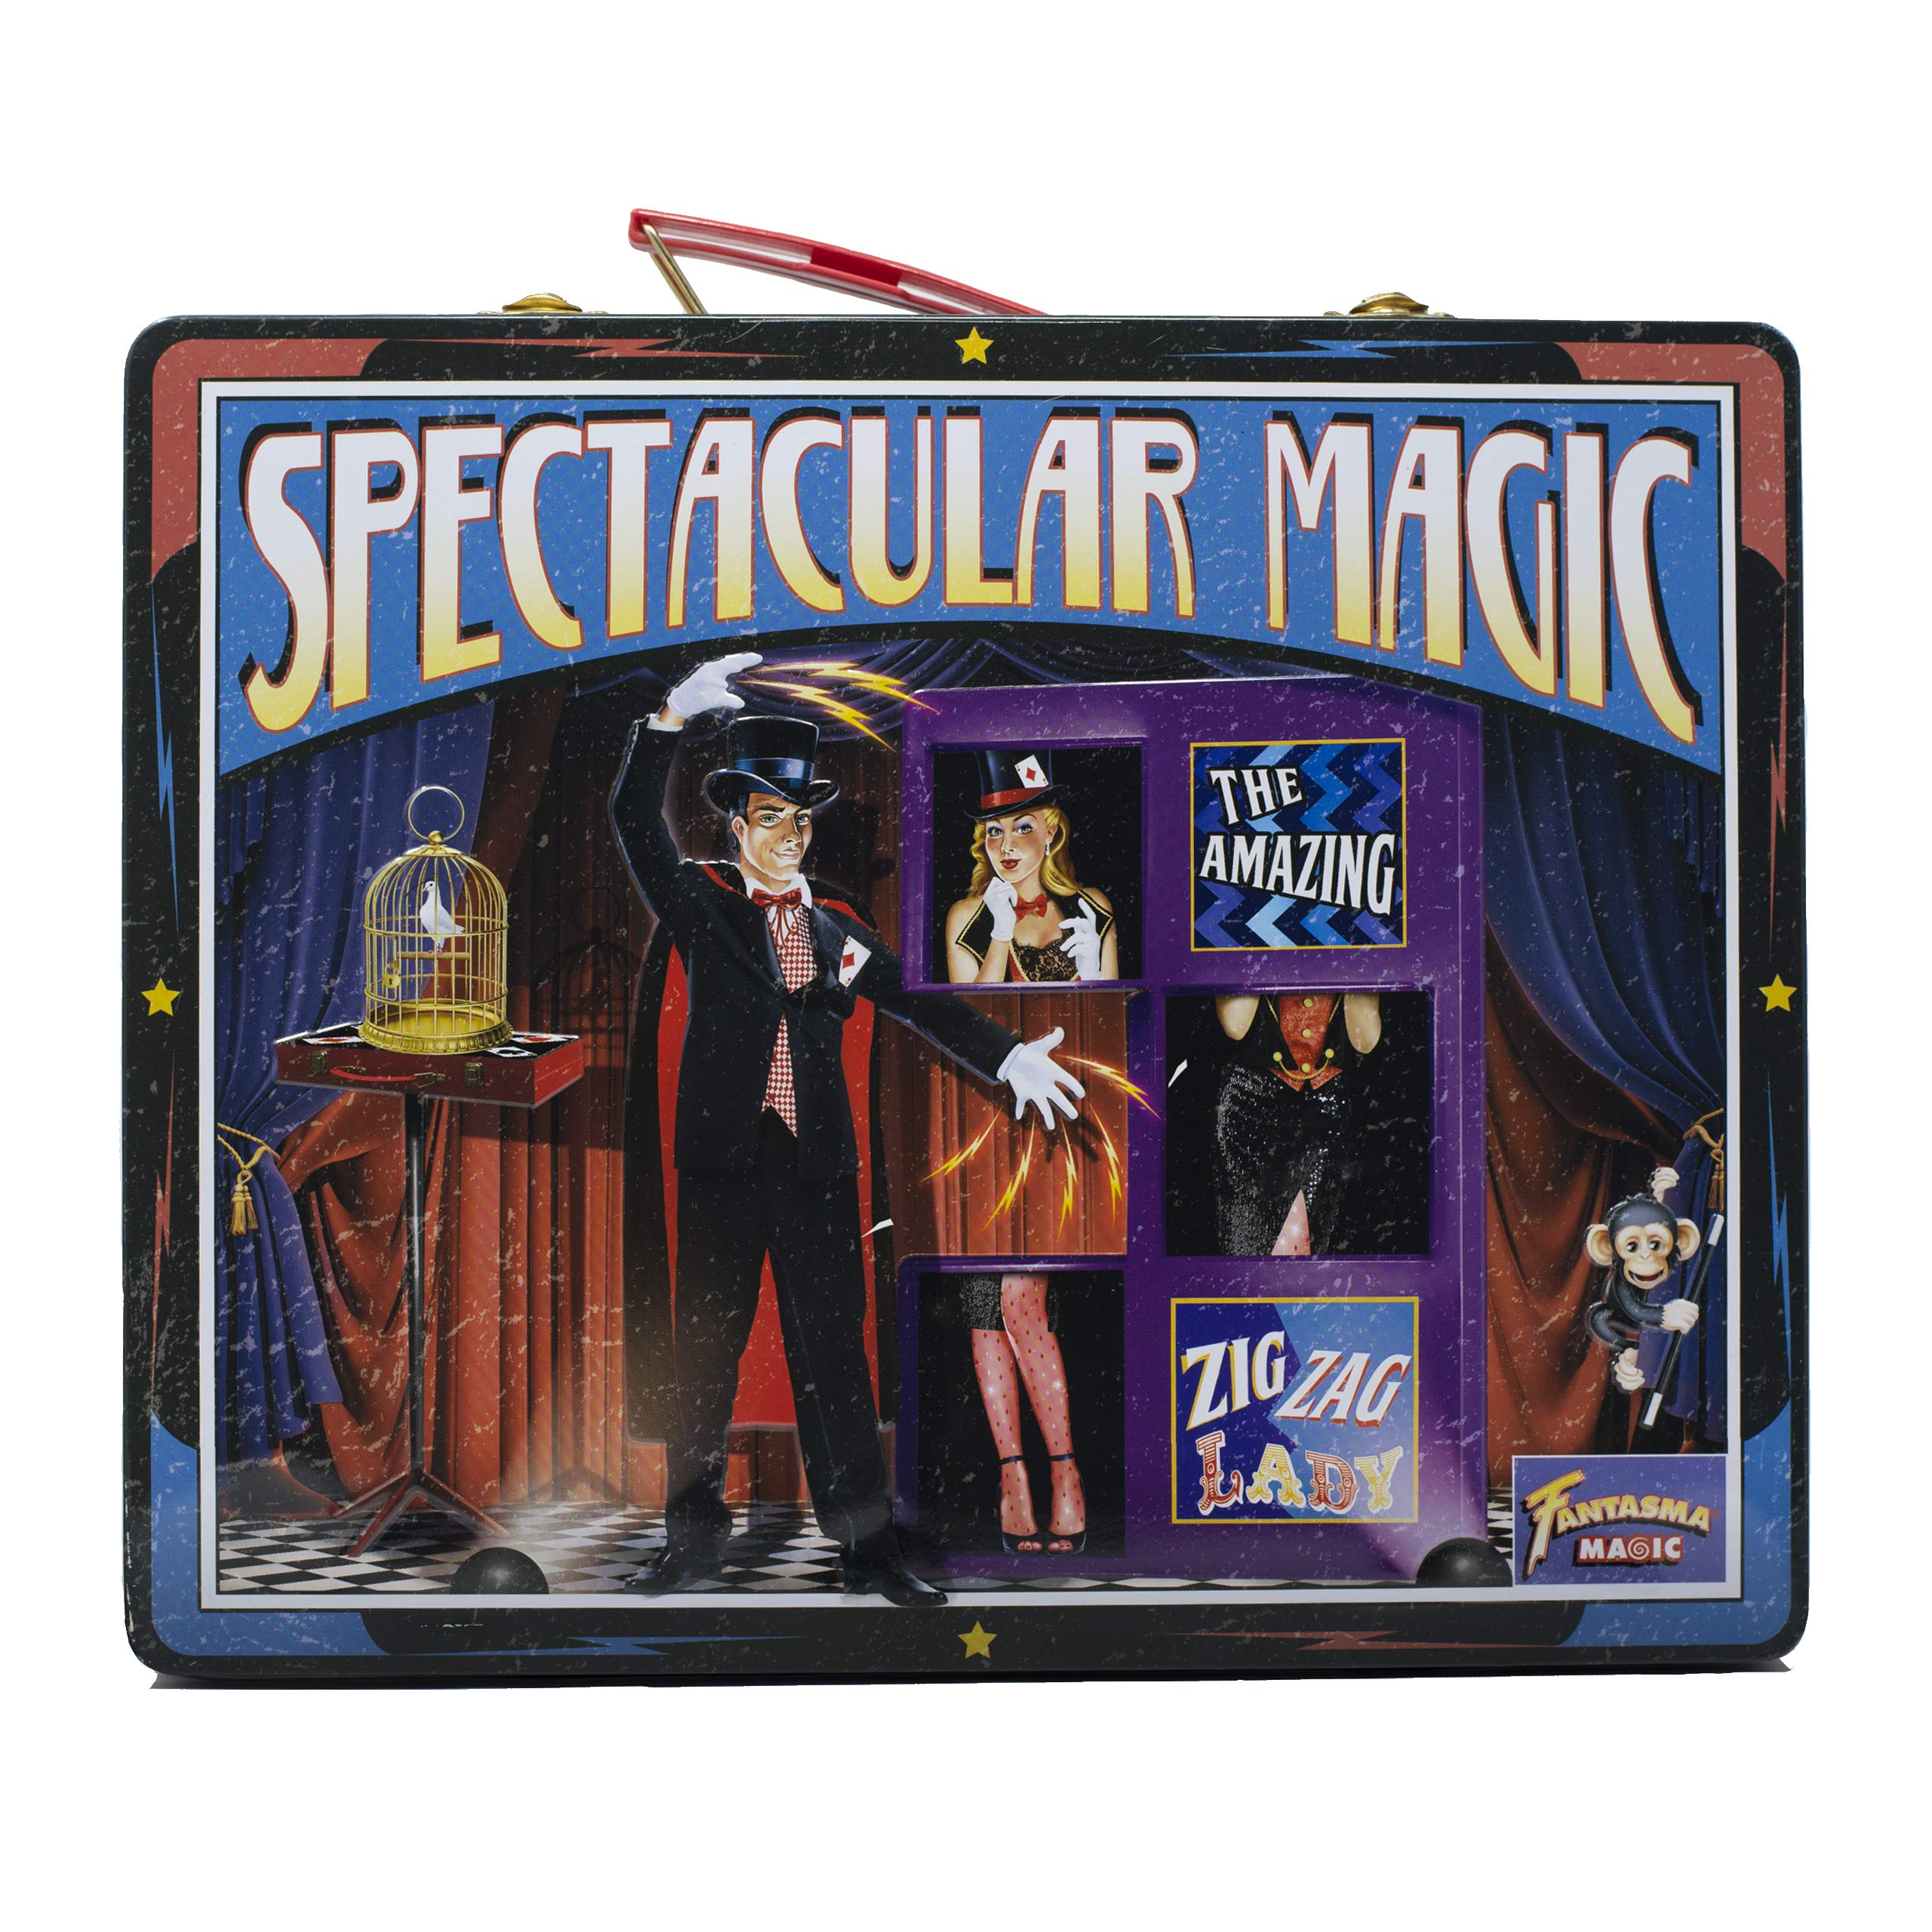 Fantasma Spectacular Magic Box Set for Kids - Magic Kit and Card Trick - Learn 135 Magic Tricks - Great for Boys and Girls 7 Years and Older        by Fantasma (Image #8)